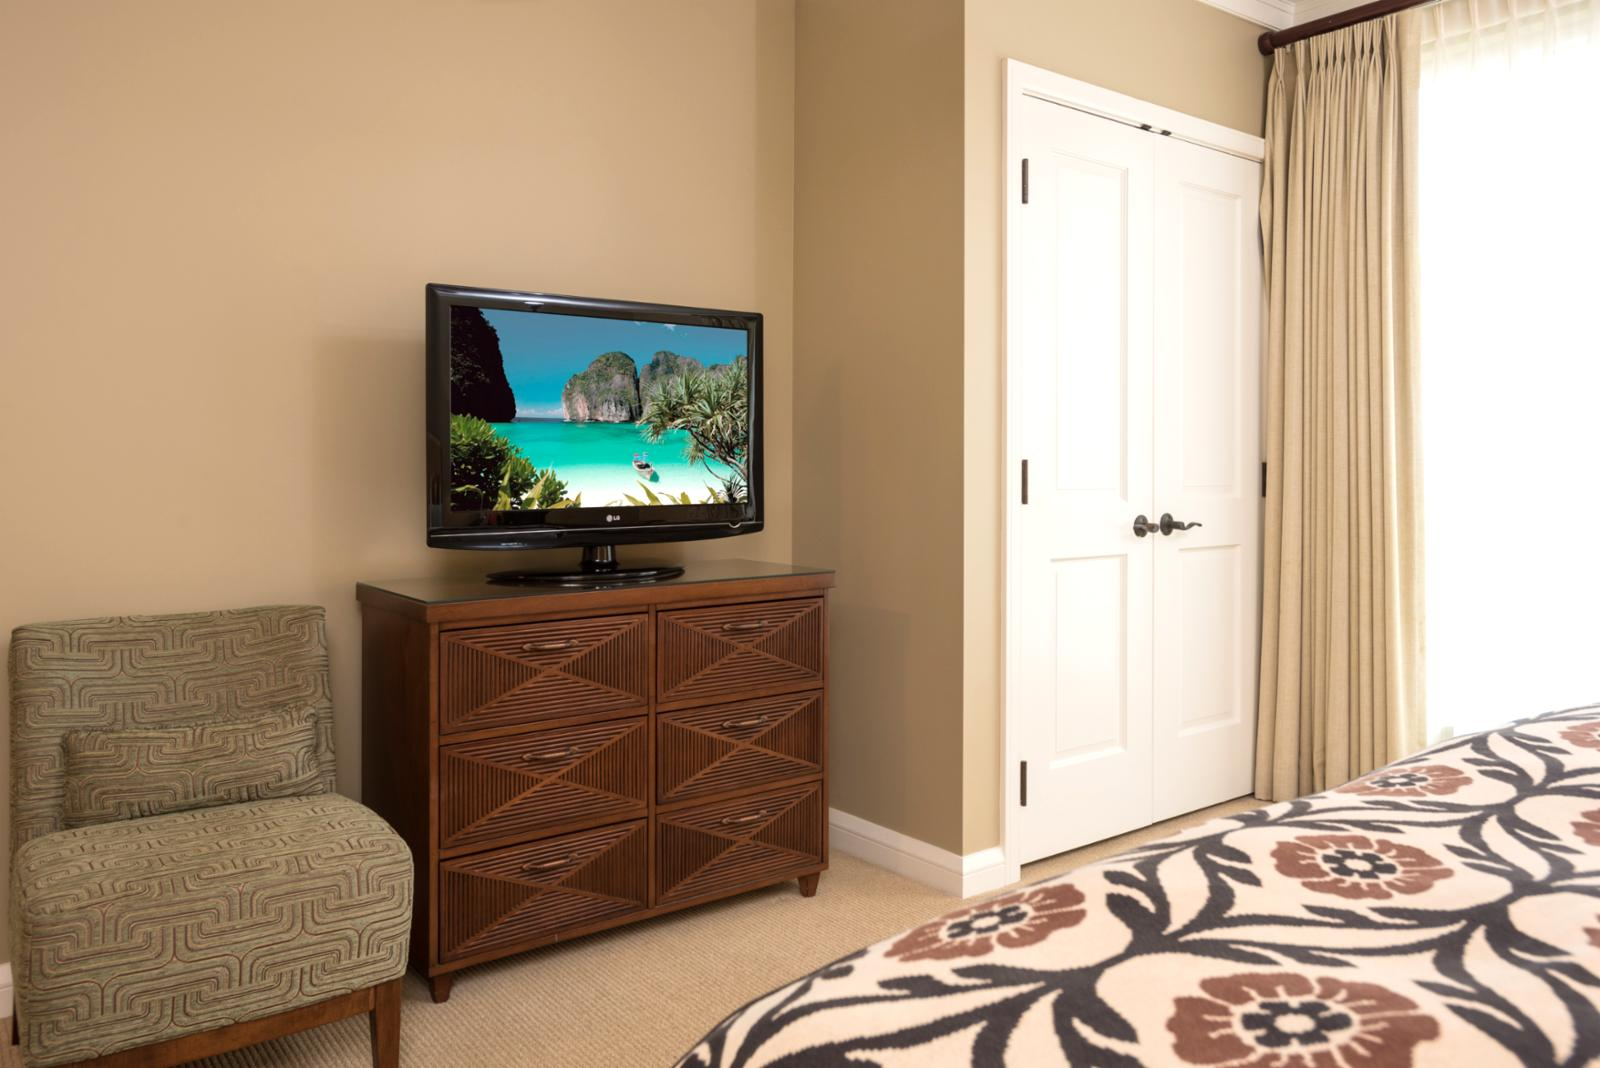 LARGE flatscreen television and additional closet storage